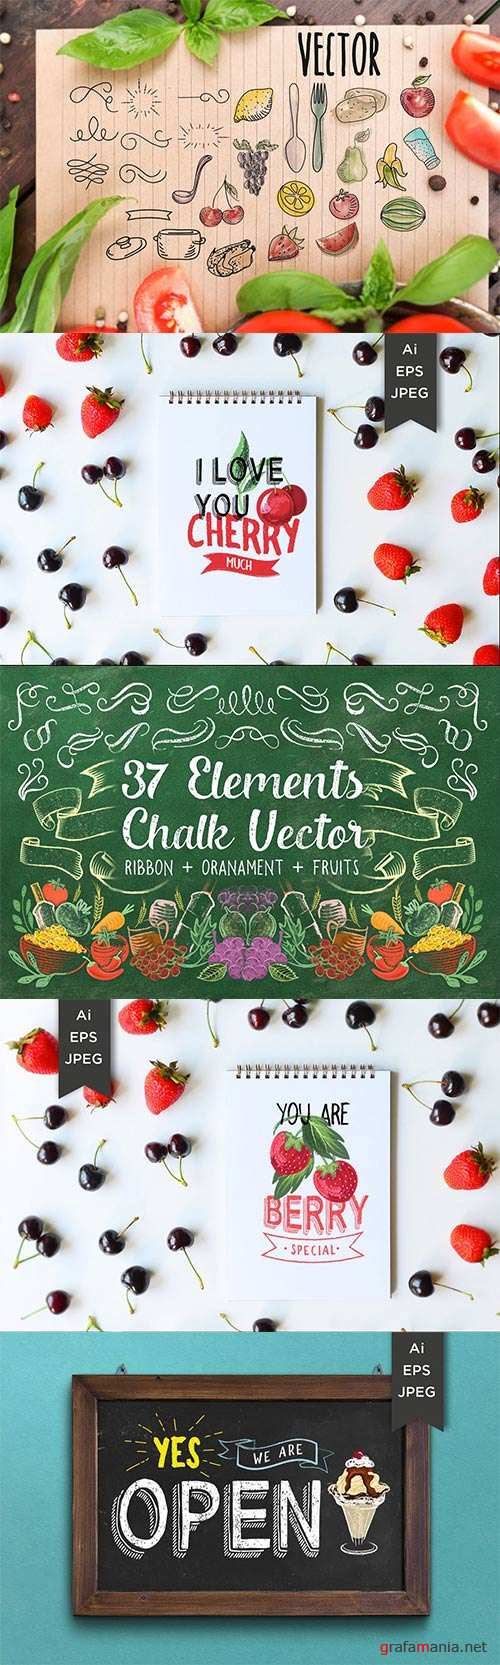 Drawing vector decorative ribbons, banners, vegetables and fruits